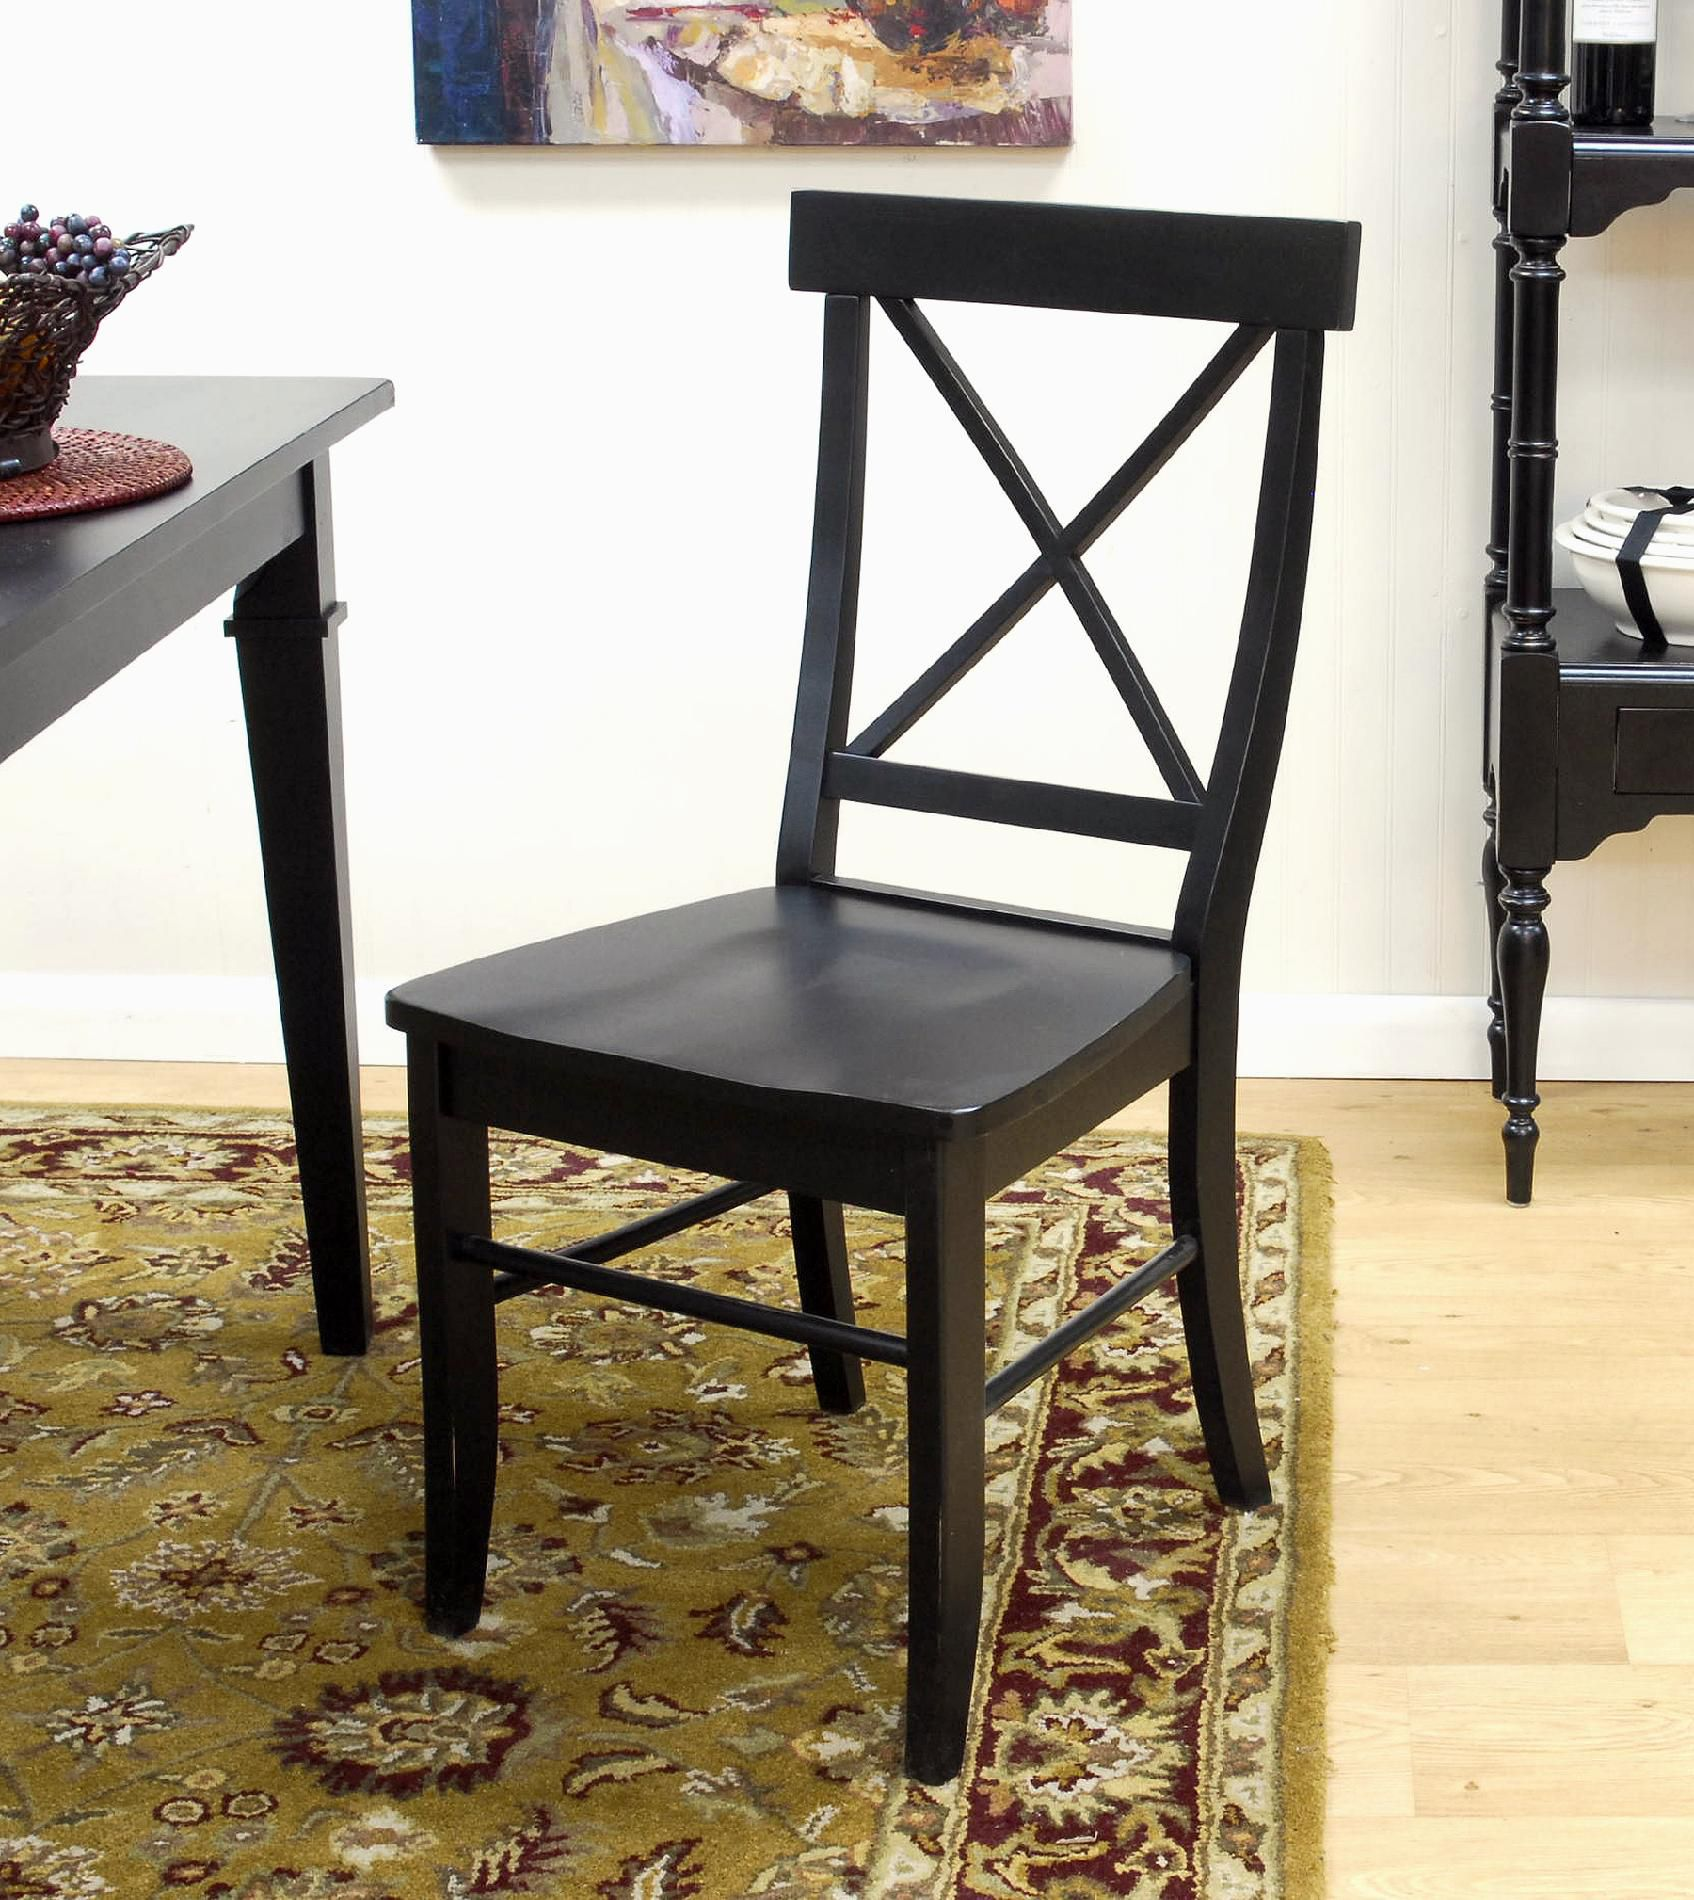 everywhere chair coupon code baby chairs for bathtub antique black essex